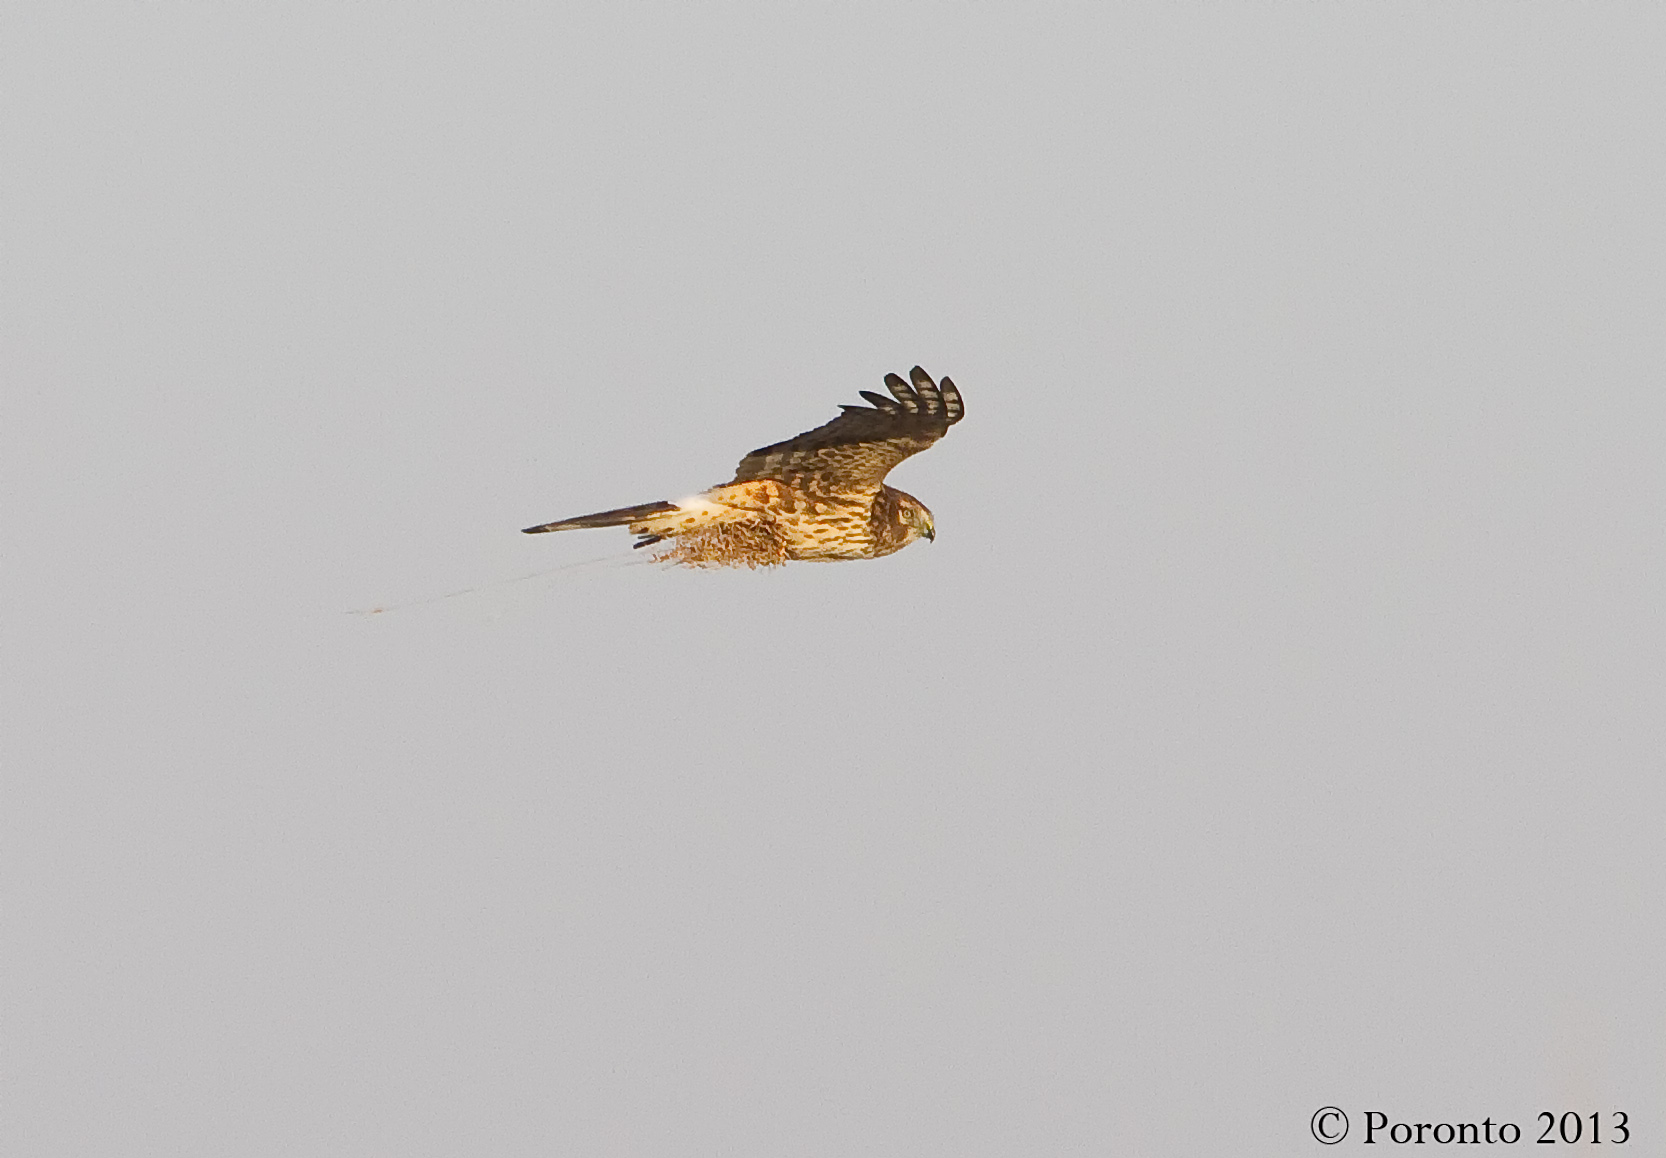 Northern Harrier carrying what looks like nesting material